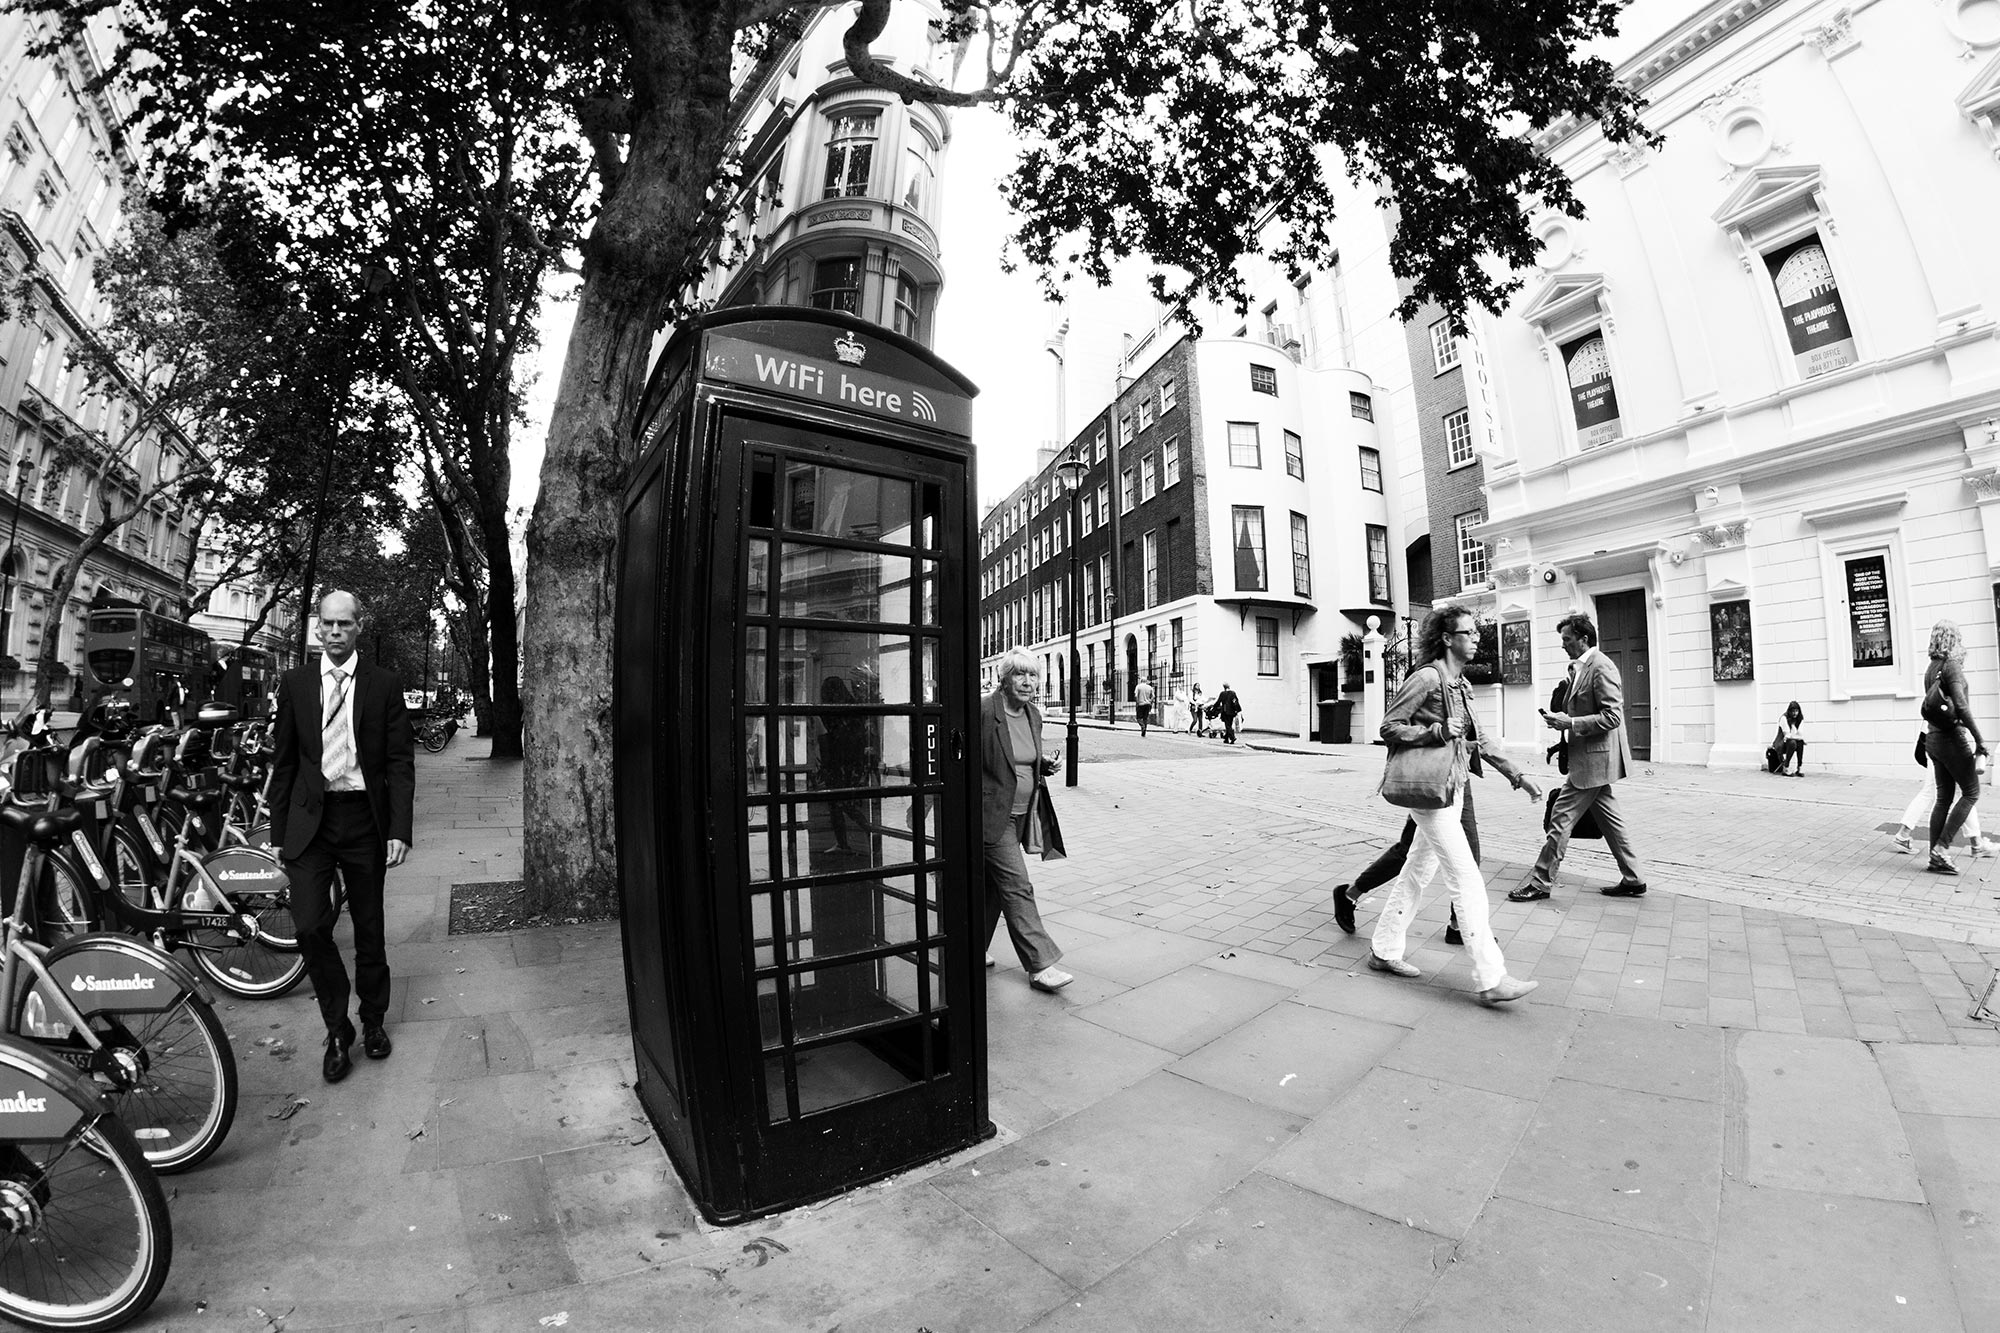 London phone booth with WiFi